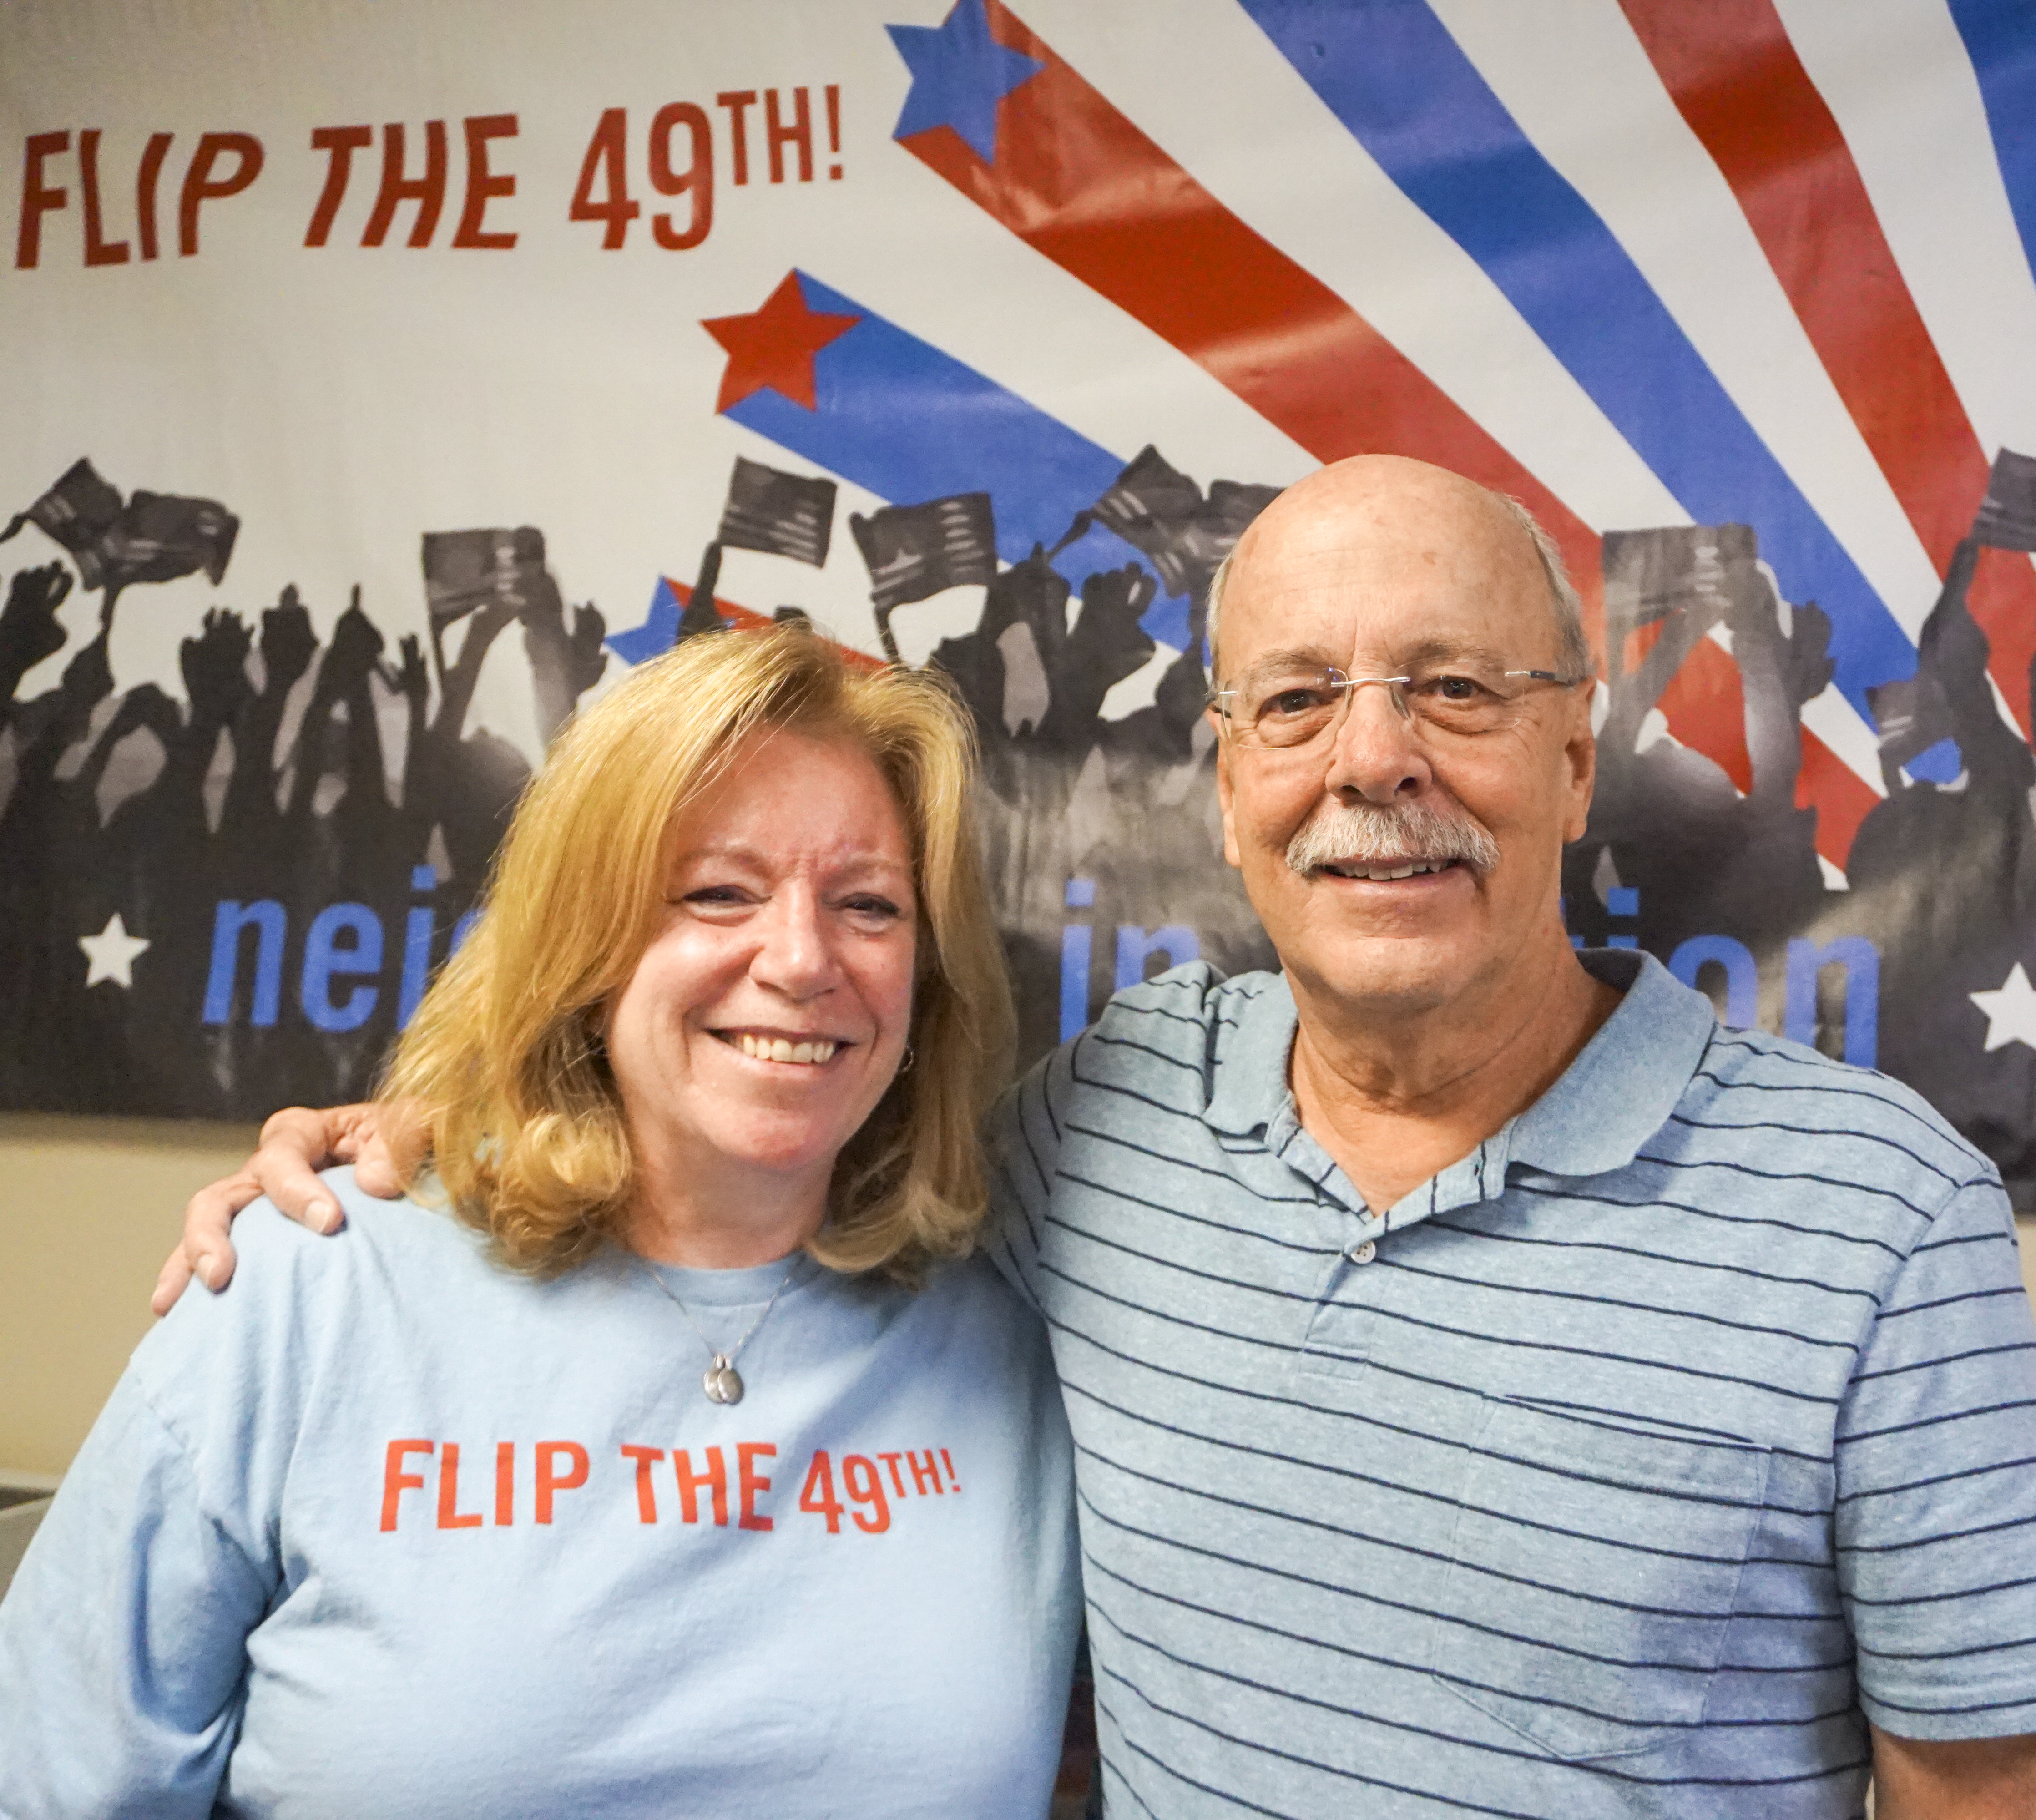 Flip the 49th! Neighbors in Action plan for next steps